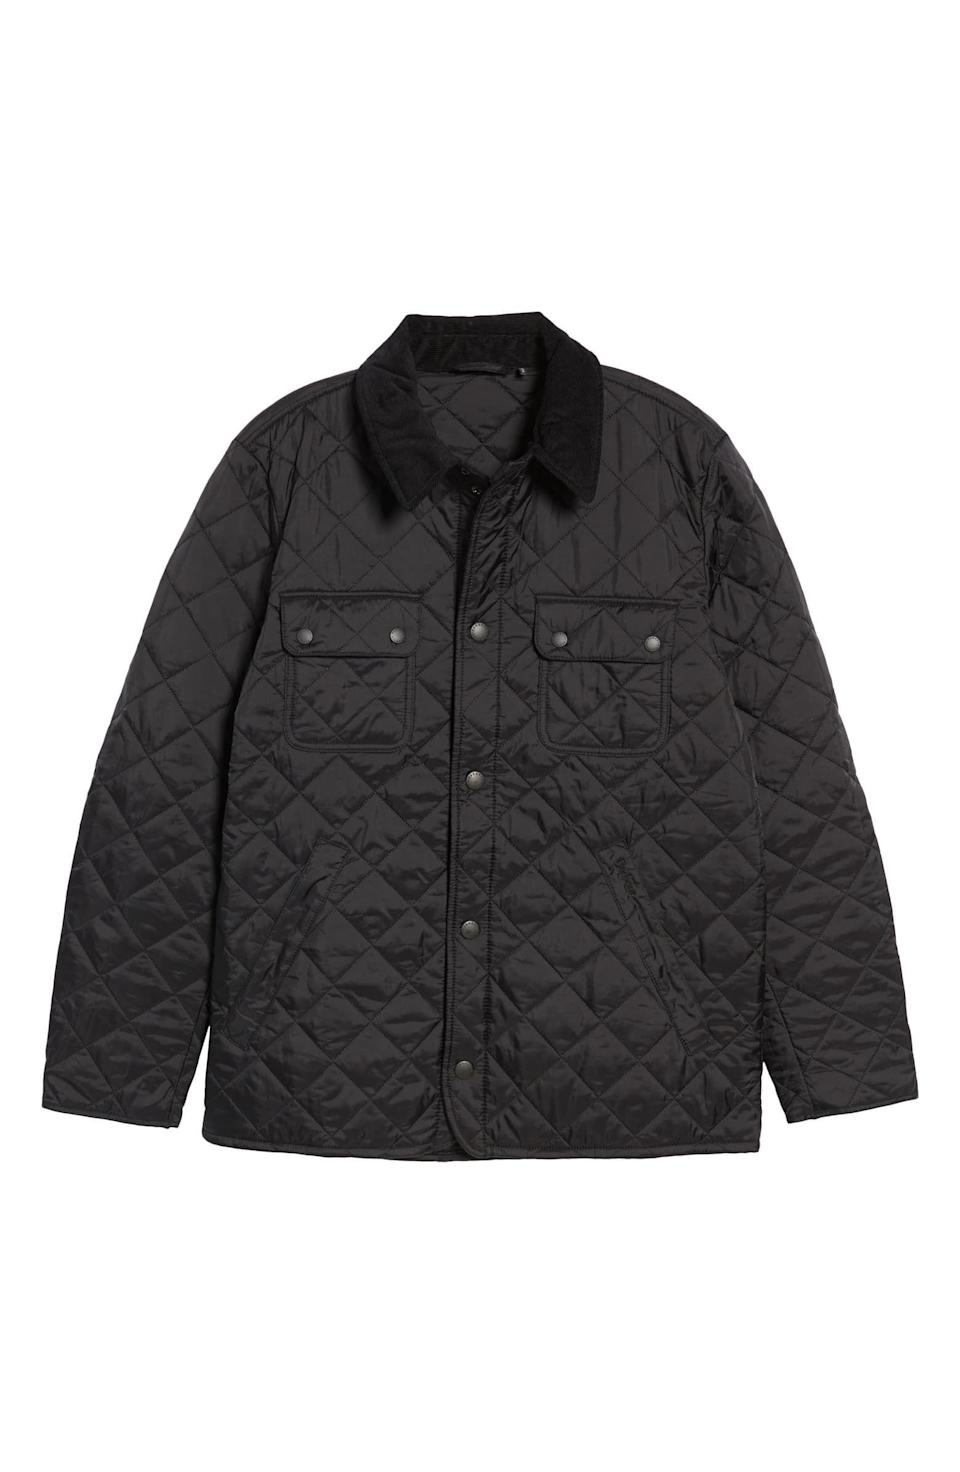 """<p><strong>Barbour</strong></p><p>nordstrom.com</p><p><strong>$129.90</strong></p><p><a href=""""https://go.redirectingat.com?id=74968X1596630&url=https%3A%2F%2Fwww.nordstrom.com%2Fs%2Fbarbour-tinford-regular-fit-quilted-jacket%2F3525186&sref=https%3A%2F%2Fwww.menshealth.com%2Fstyle%2Fg33510339%2Fnordstrom-anniversary-sale-2020%2F"""" rel=""""nofollow noopener"""" target=""""_blank"""" data-ylk=""""slk:Shop Now"""" class=""""link rapid-noclick-resp"""">Shop Now</a></p><p><del><strong>$200</strong></del> <strong>$129.90 (35% off)</strong></p><p>You're going to get a lot of mileage out this jacket once the temperature drop. Between its corduroy collar, diamond-quilted detailing, and adjustable side snaps to ensure a comfortable fit, this layer is equal parts practical and pretty. </p>"""